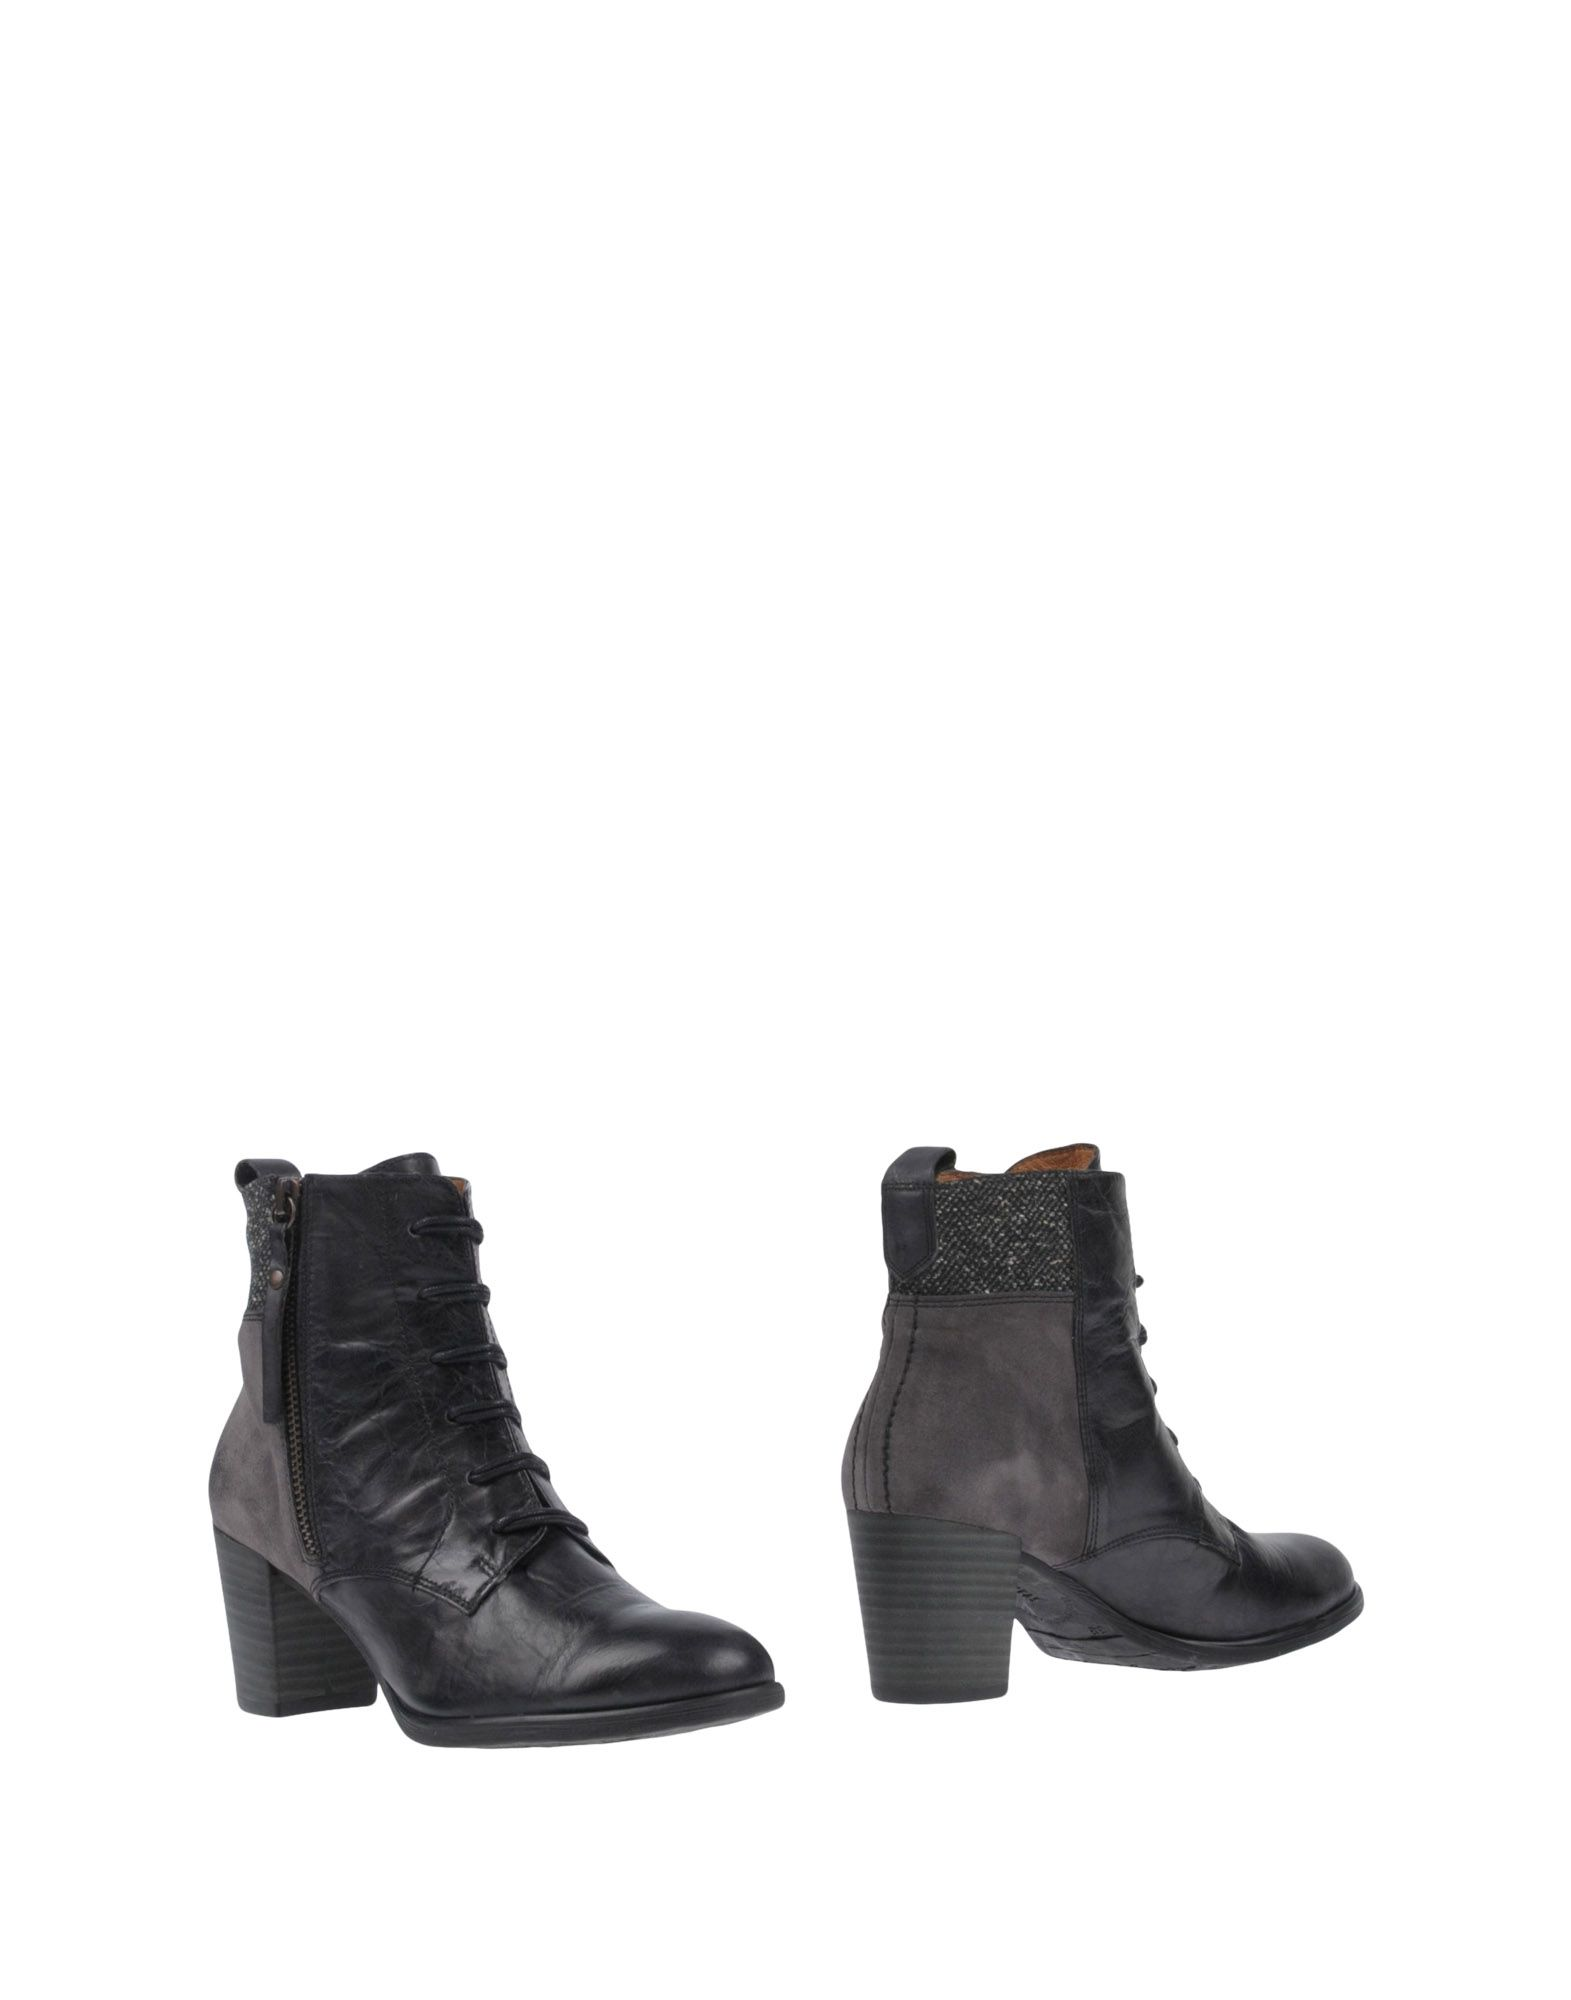 Bottine Hispanitas Femme - Bottines Hispanitas sur